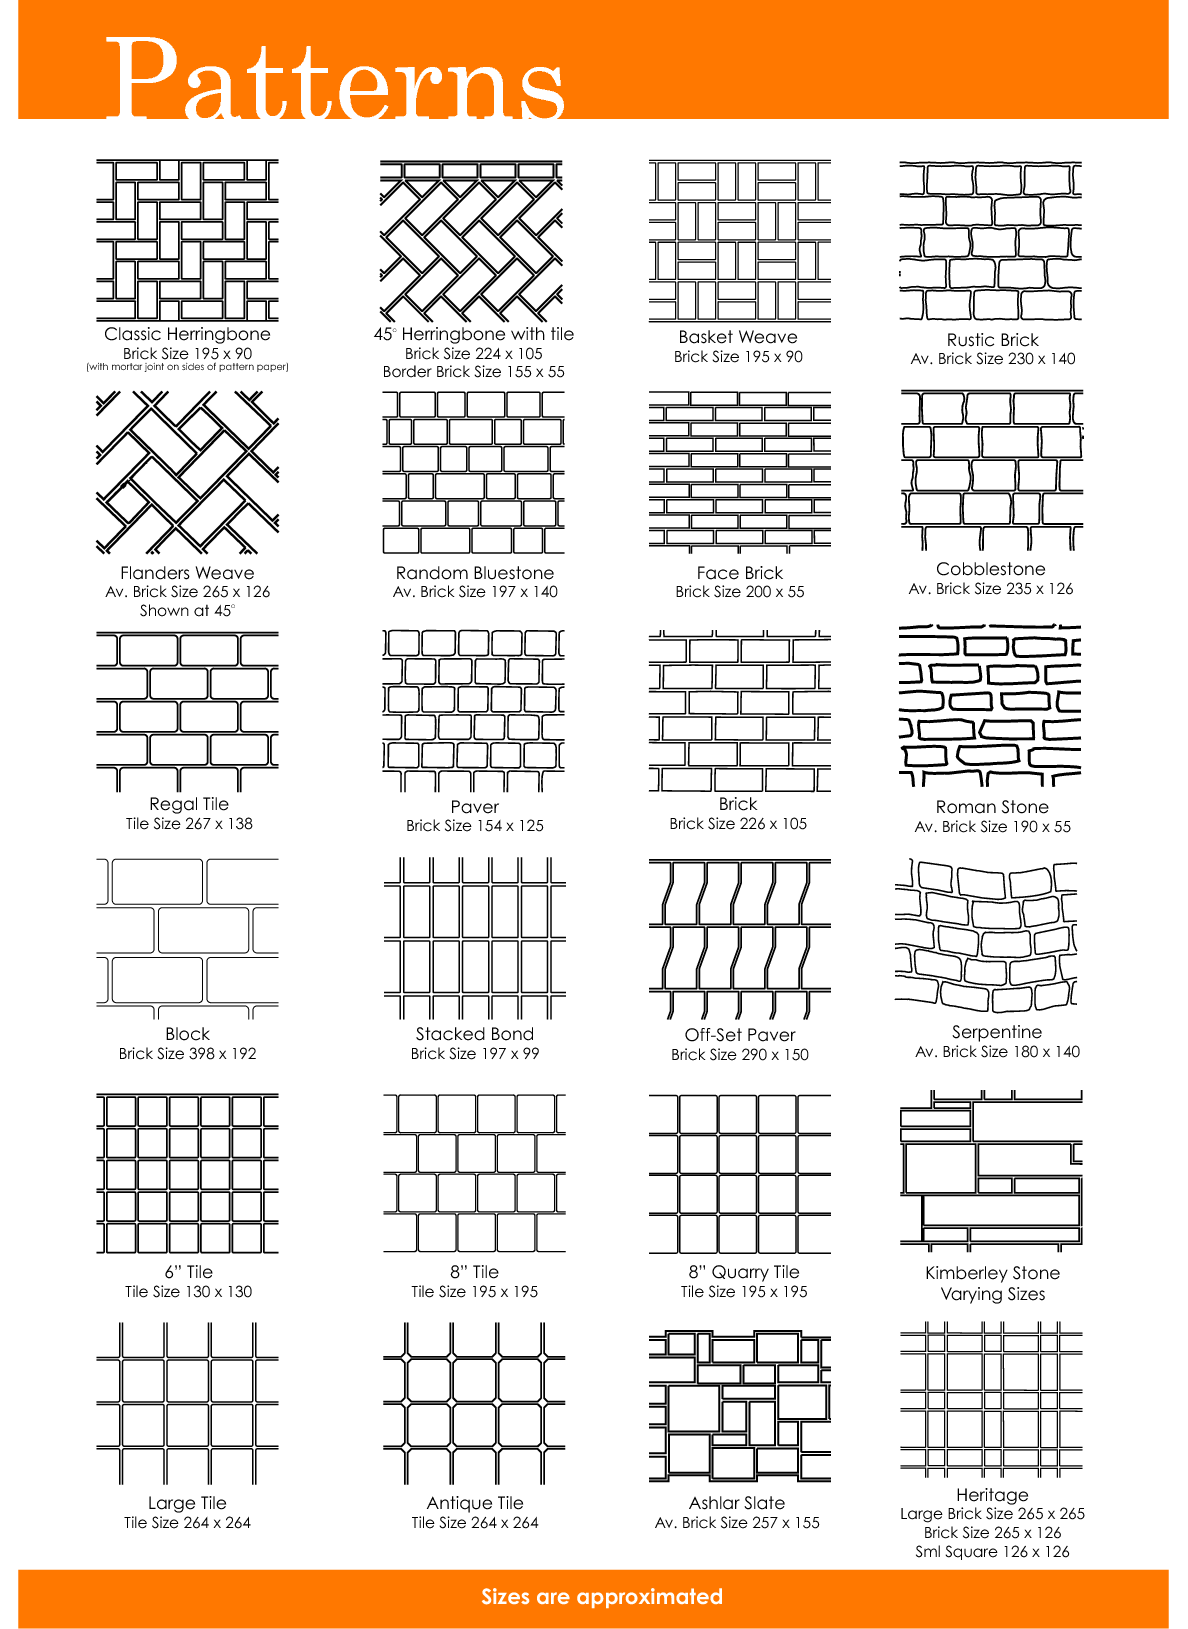 Pin By Chengwei Chen On Brick Brick Design Deck Patterns